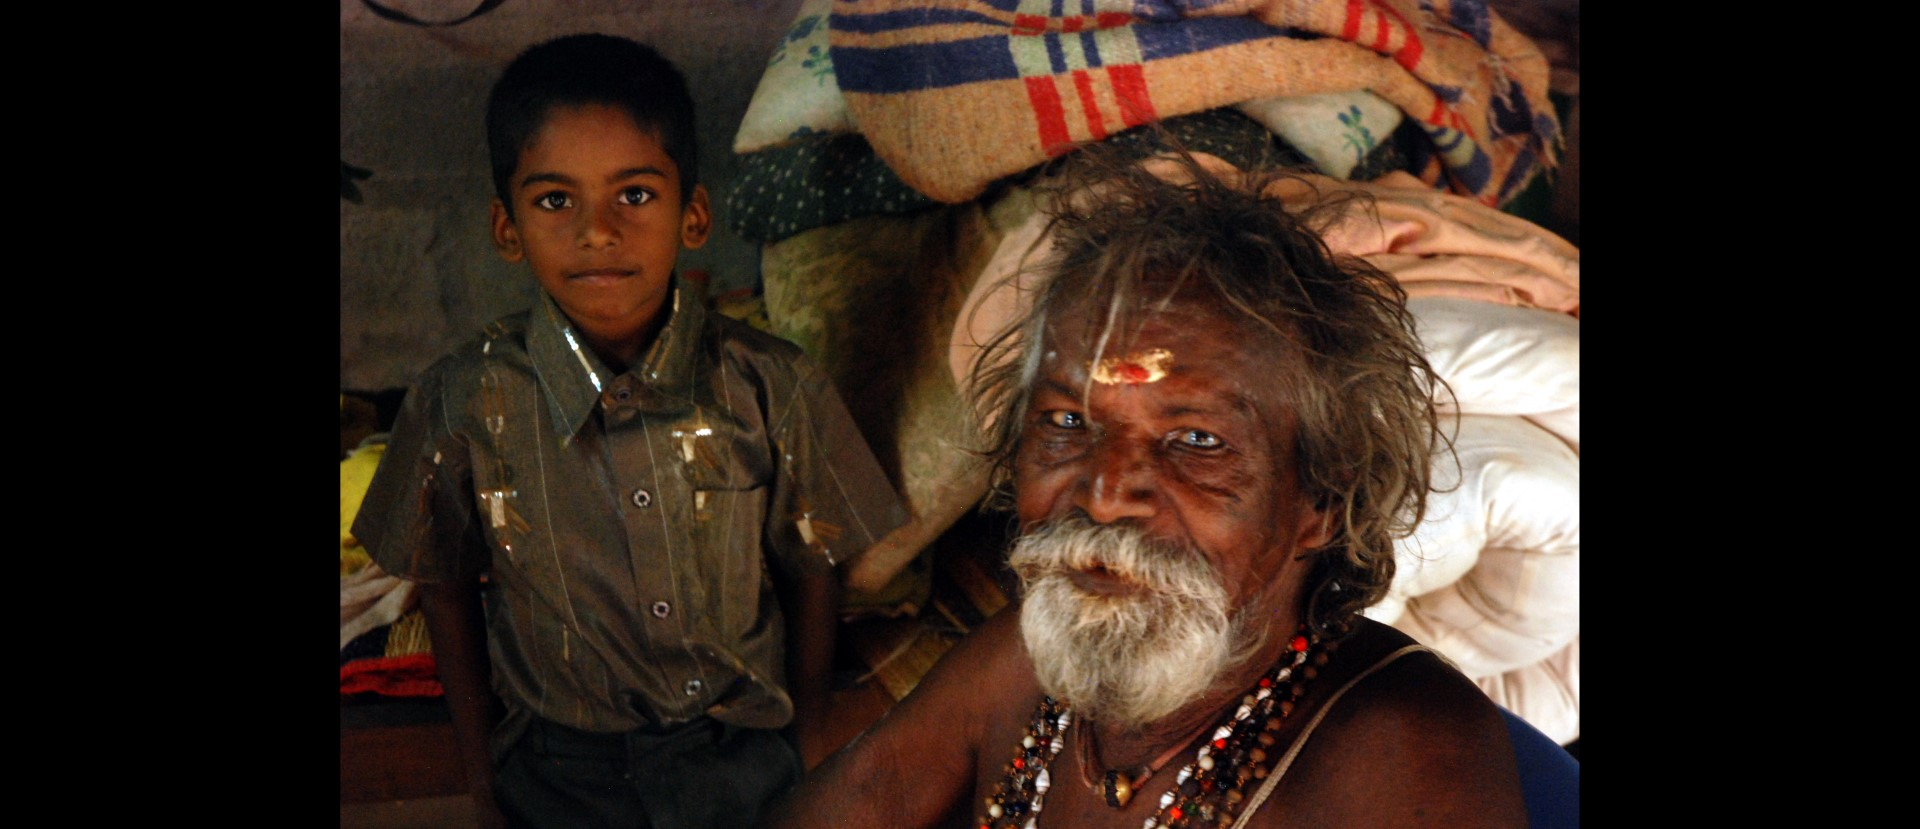 Mutthaiya with his grandson